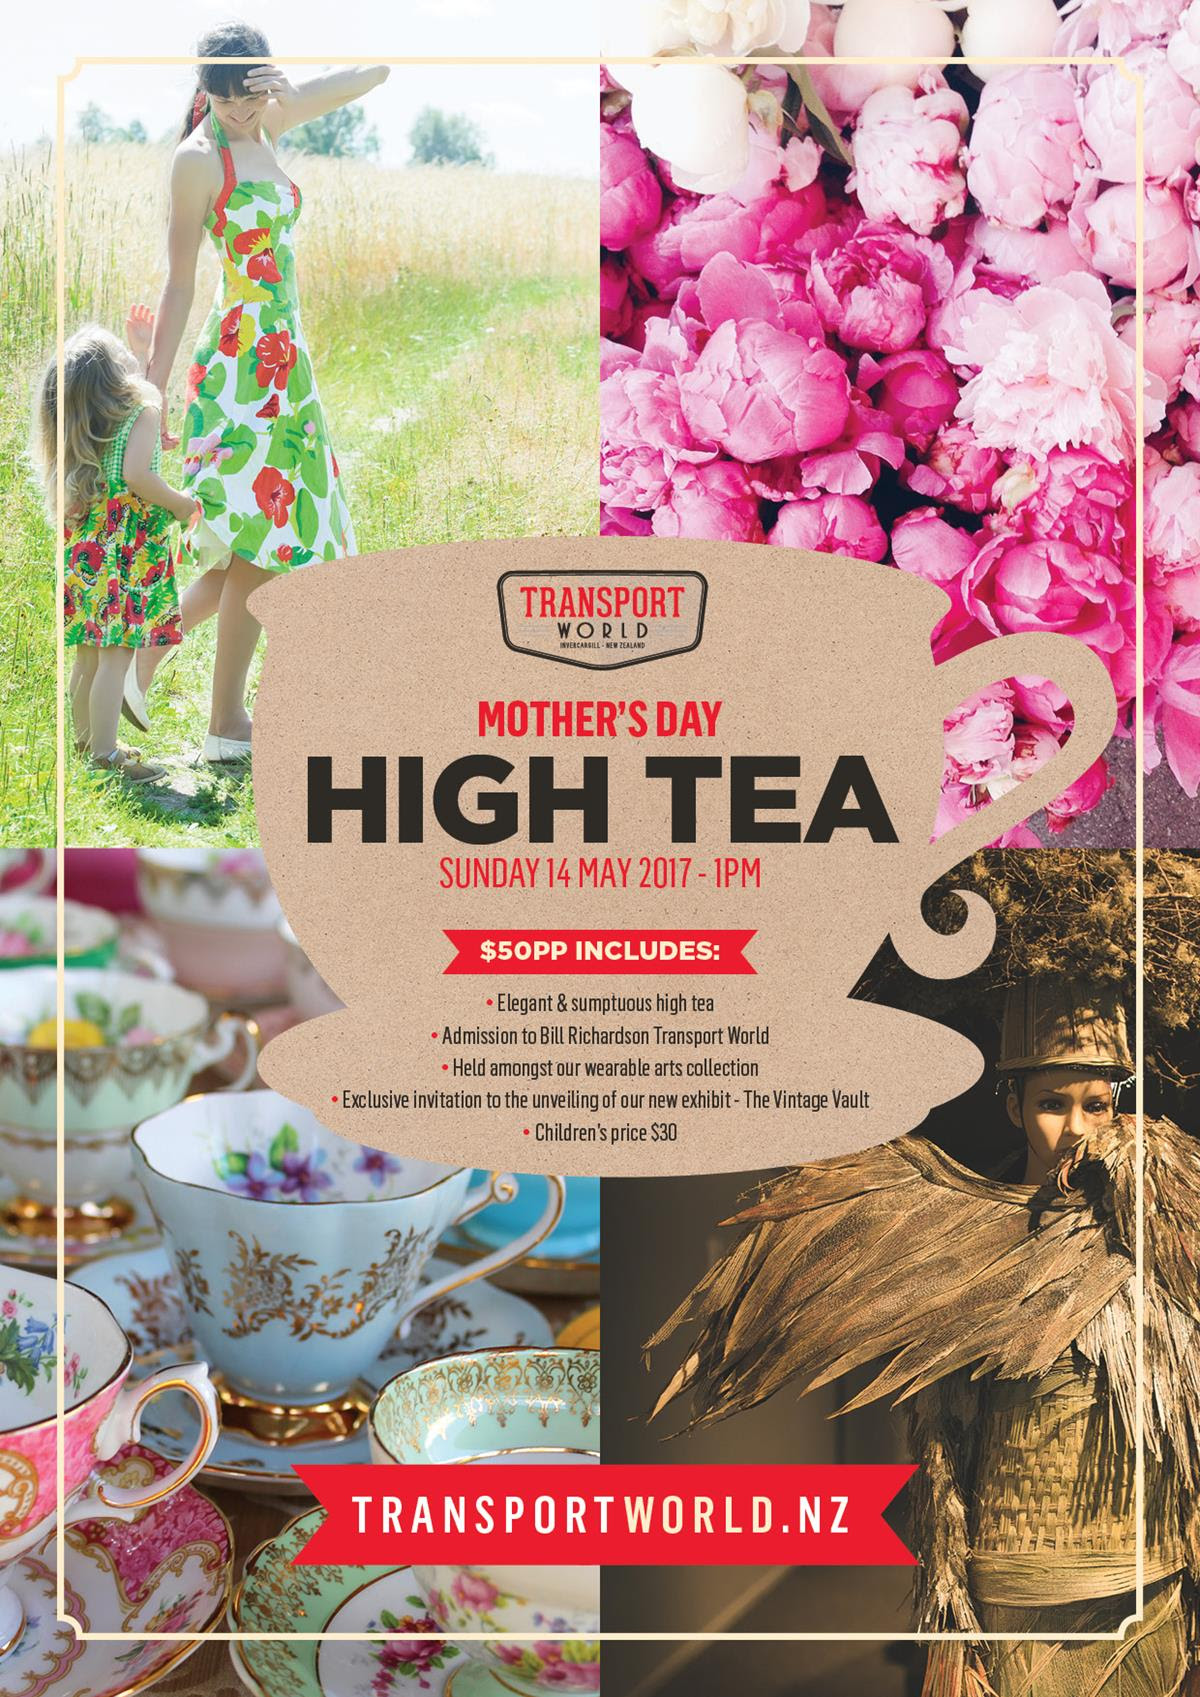 Mothers Day High Tea at Transport World